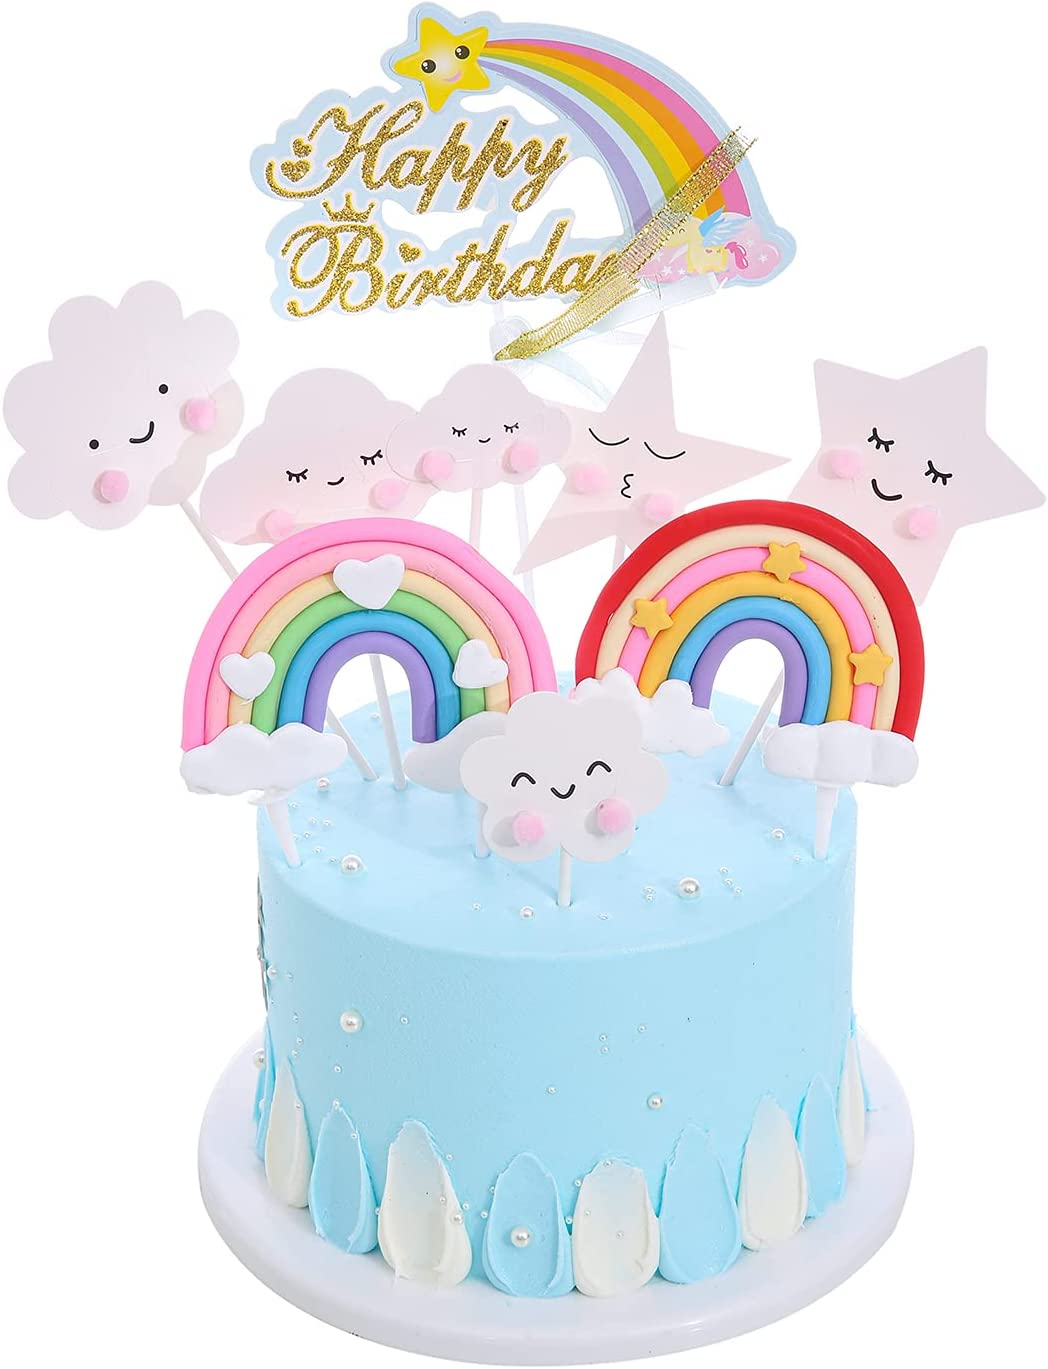 9pc cute Girl's favorite birthday cake decoration Happy Birthday Cake Topper Set, Include Rainbow Cloud Star for Birthday Wedding Party Cupcake Decoration